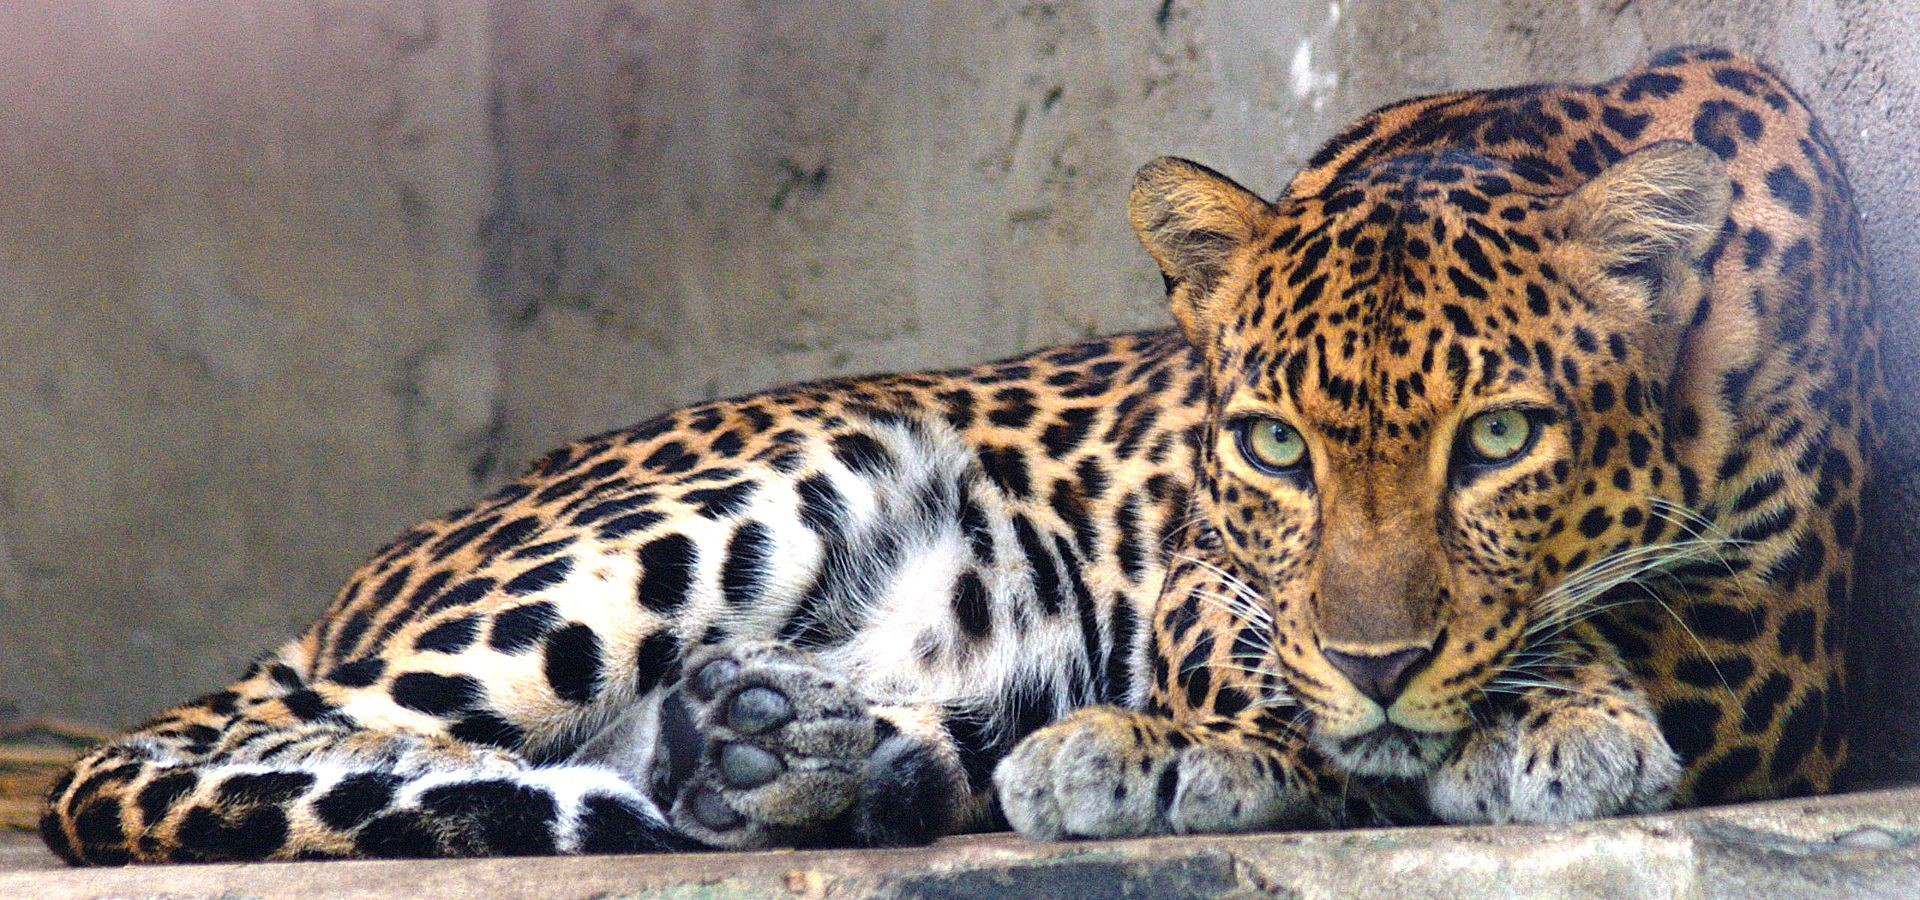 Leopardo-da-indochina no zoológico de Saigon, no Vietnã.   (Foto: Creative Commons / Tomáš Najer)